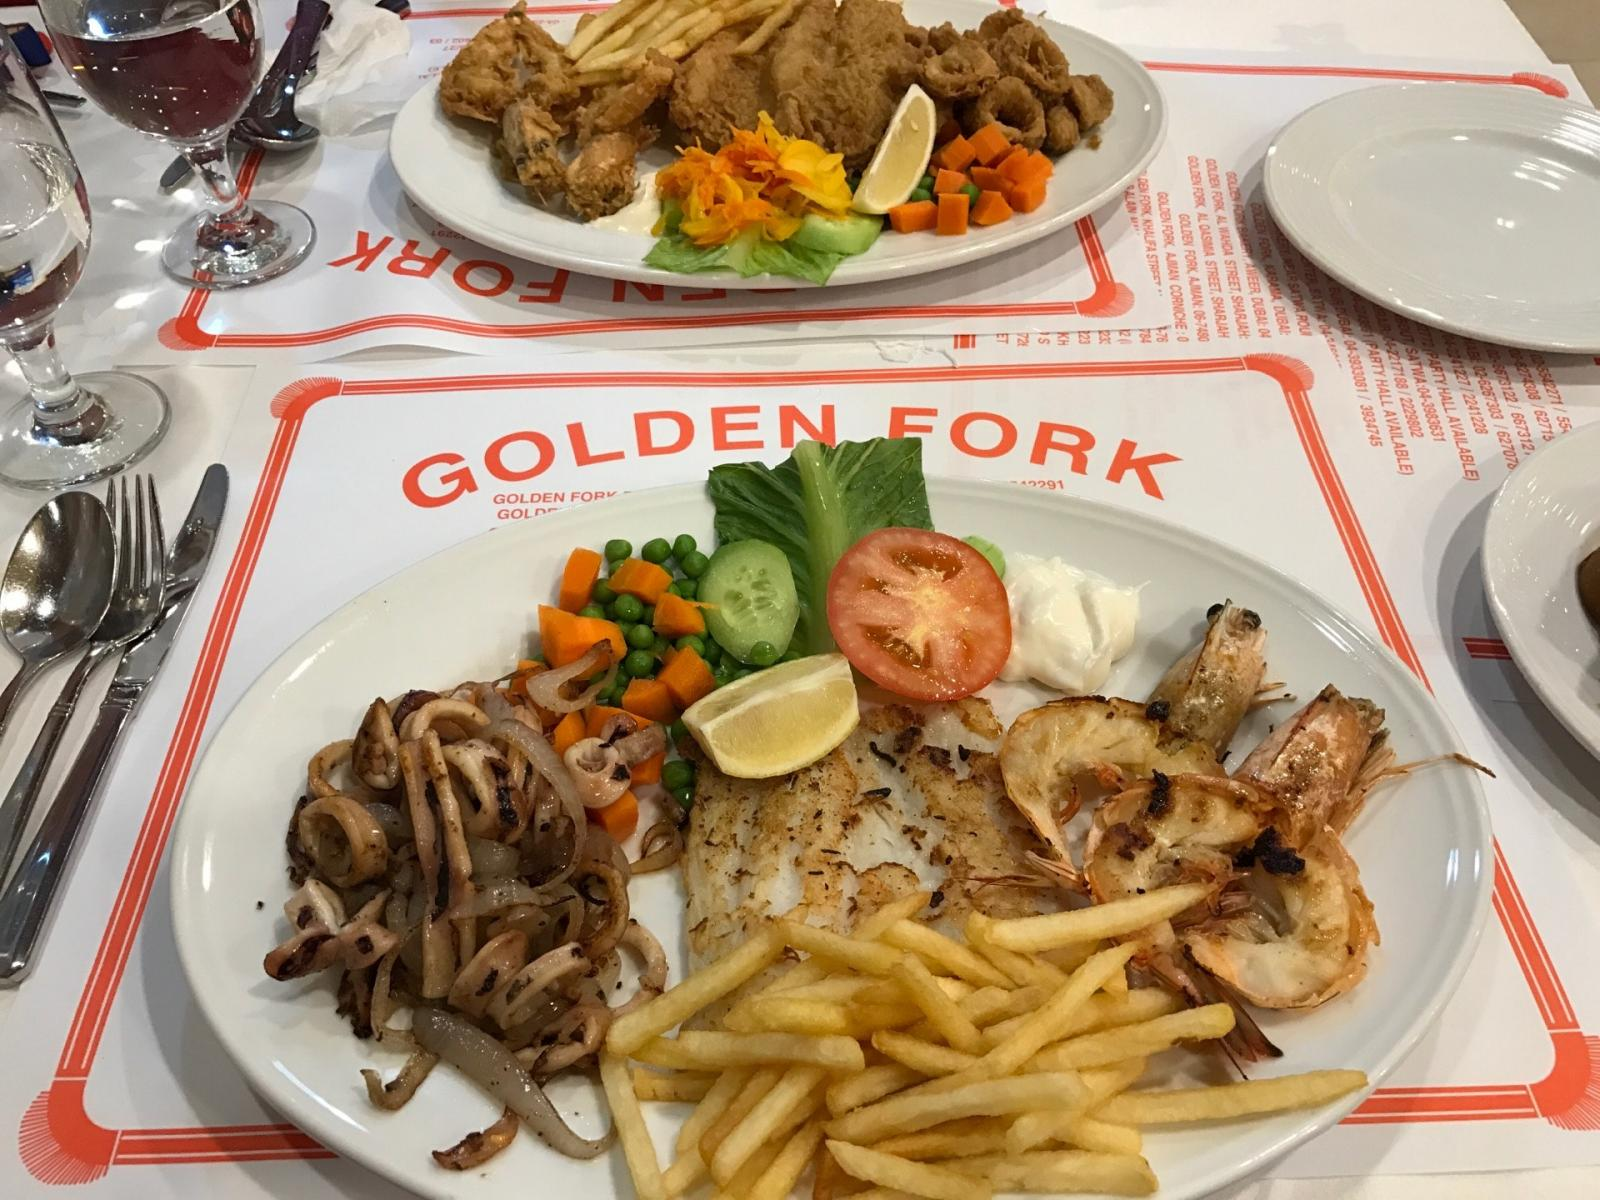 Ужин в Golden Fork